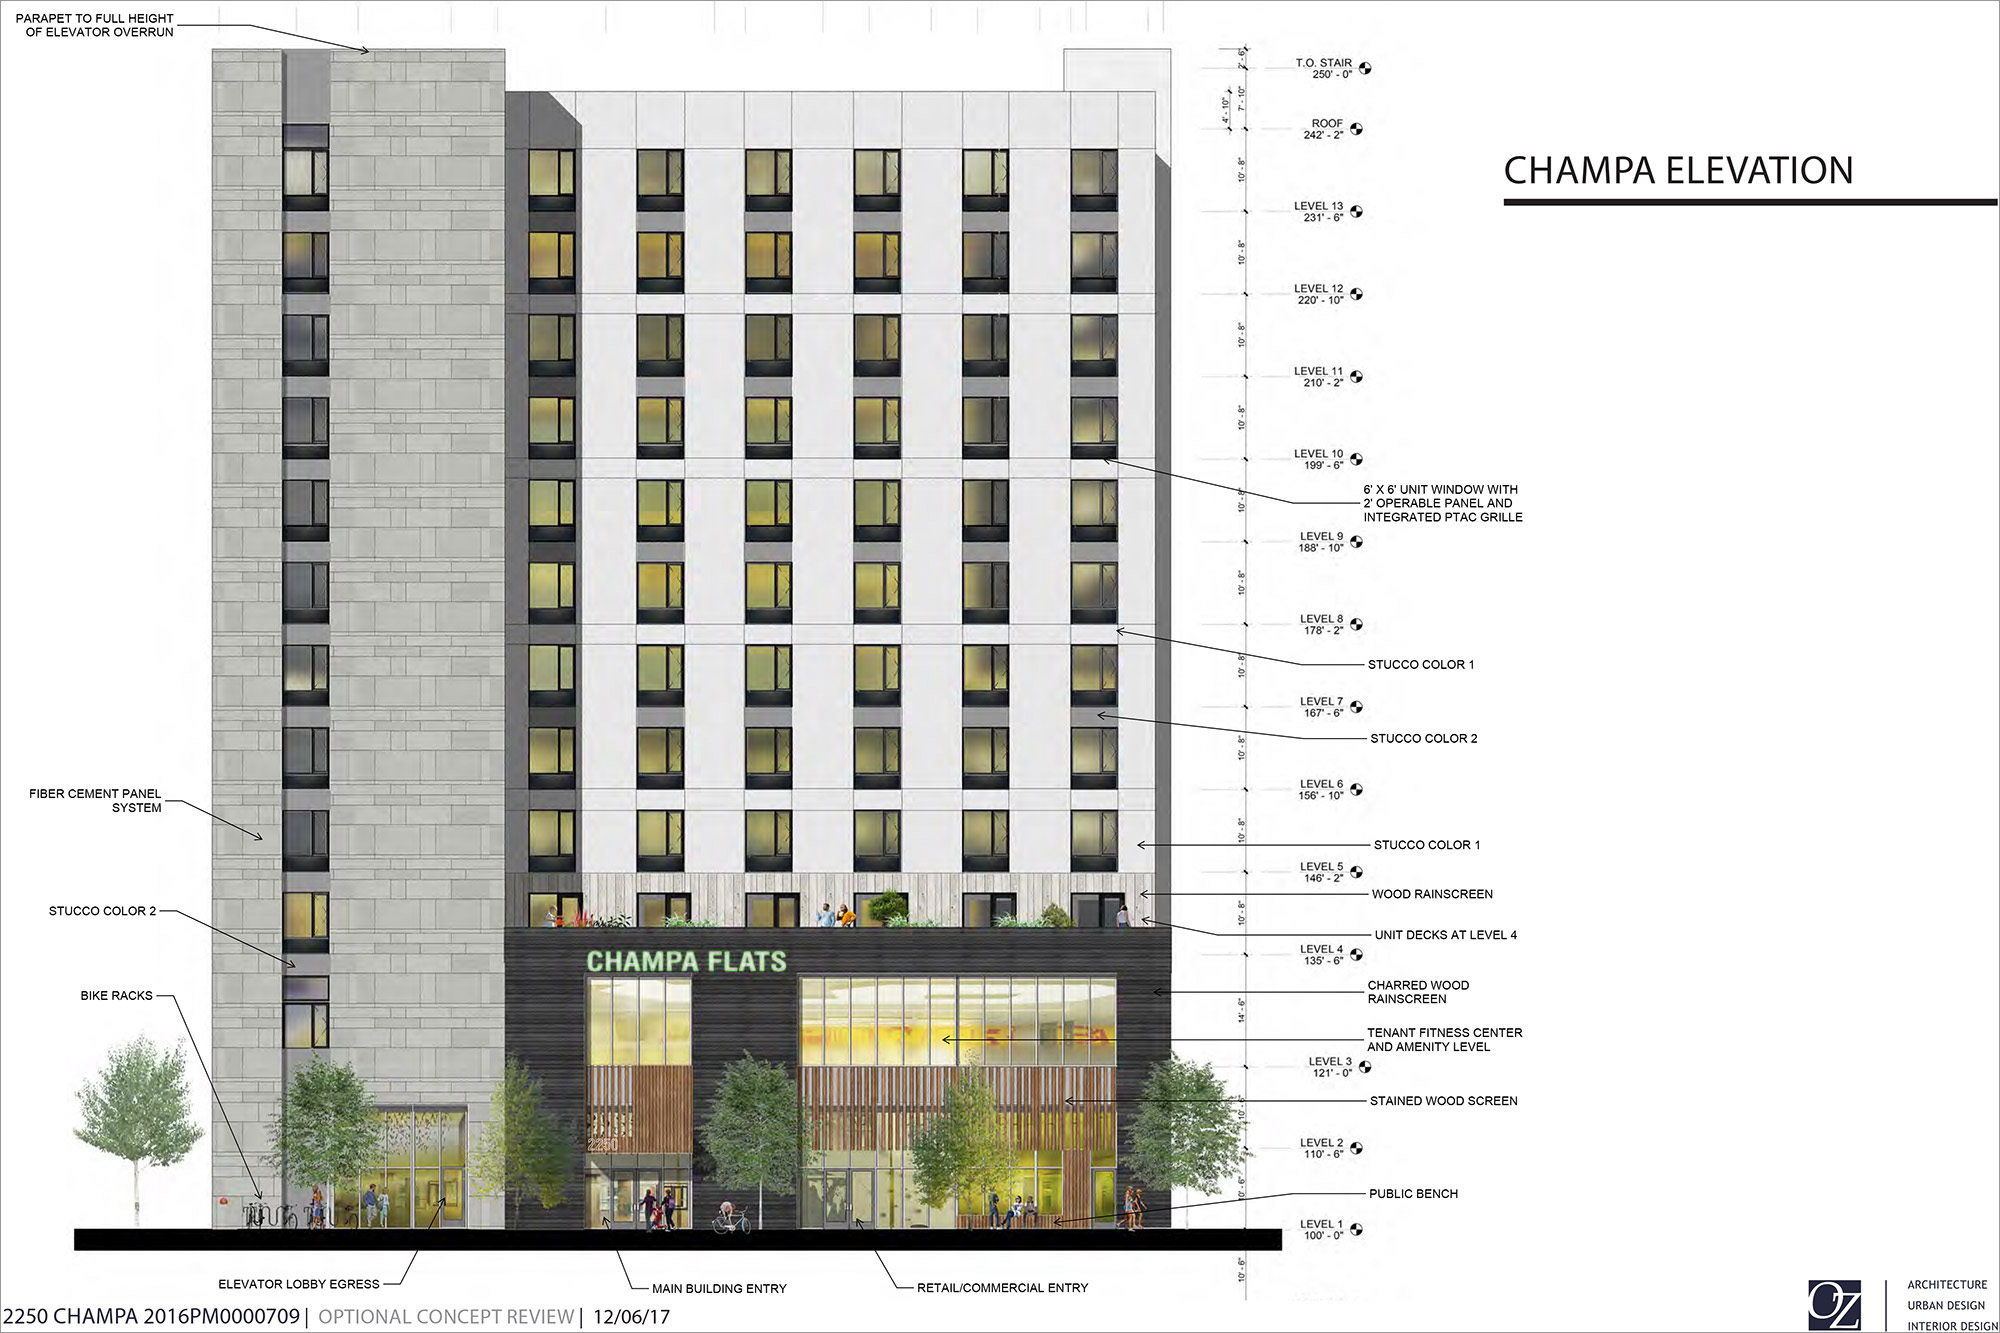 Champa Flats rendering courtesy of OZ Architecture